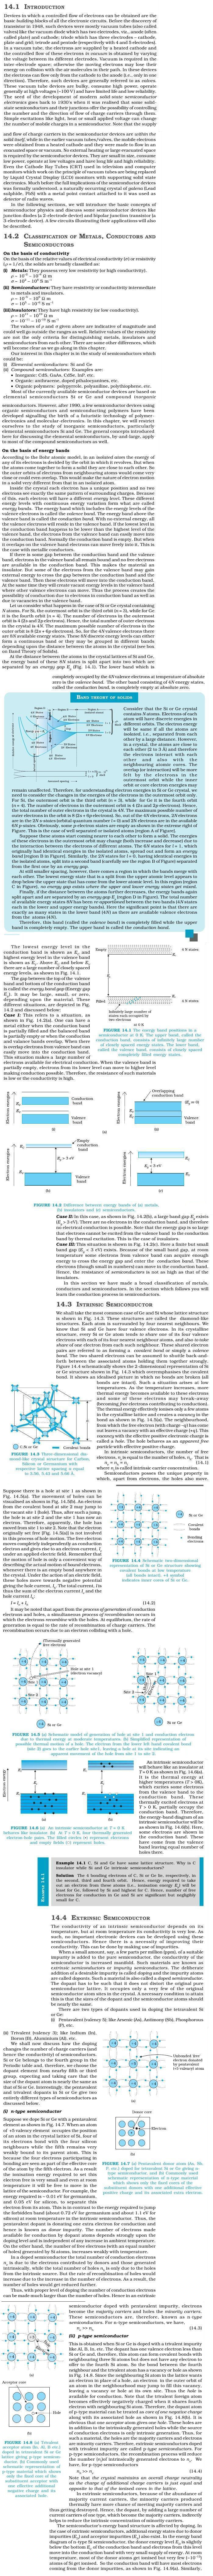 NCERT Class XII Physics Chapter 14 - Semiconductors Electronics